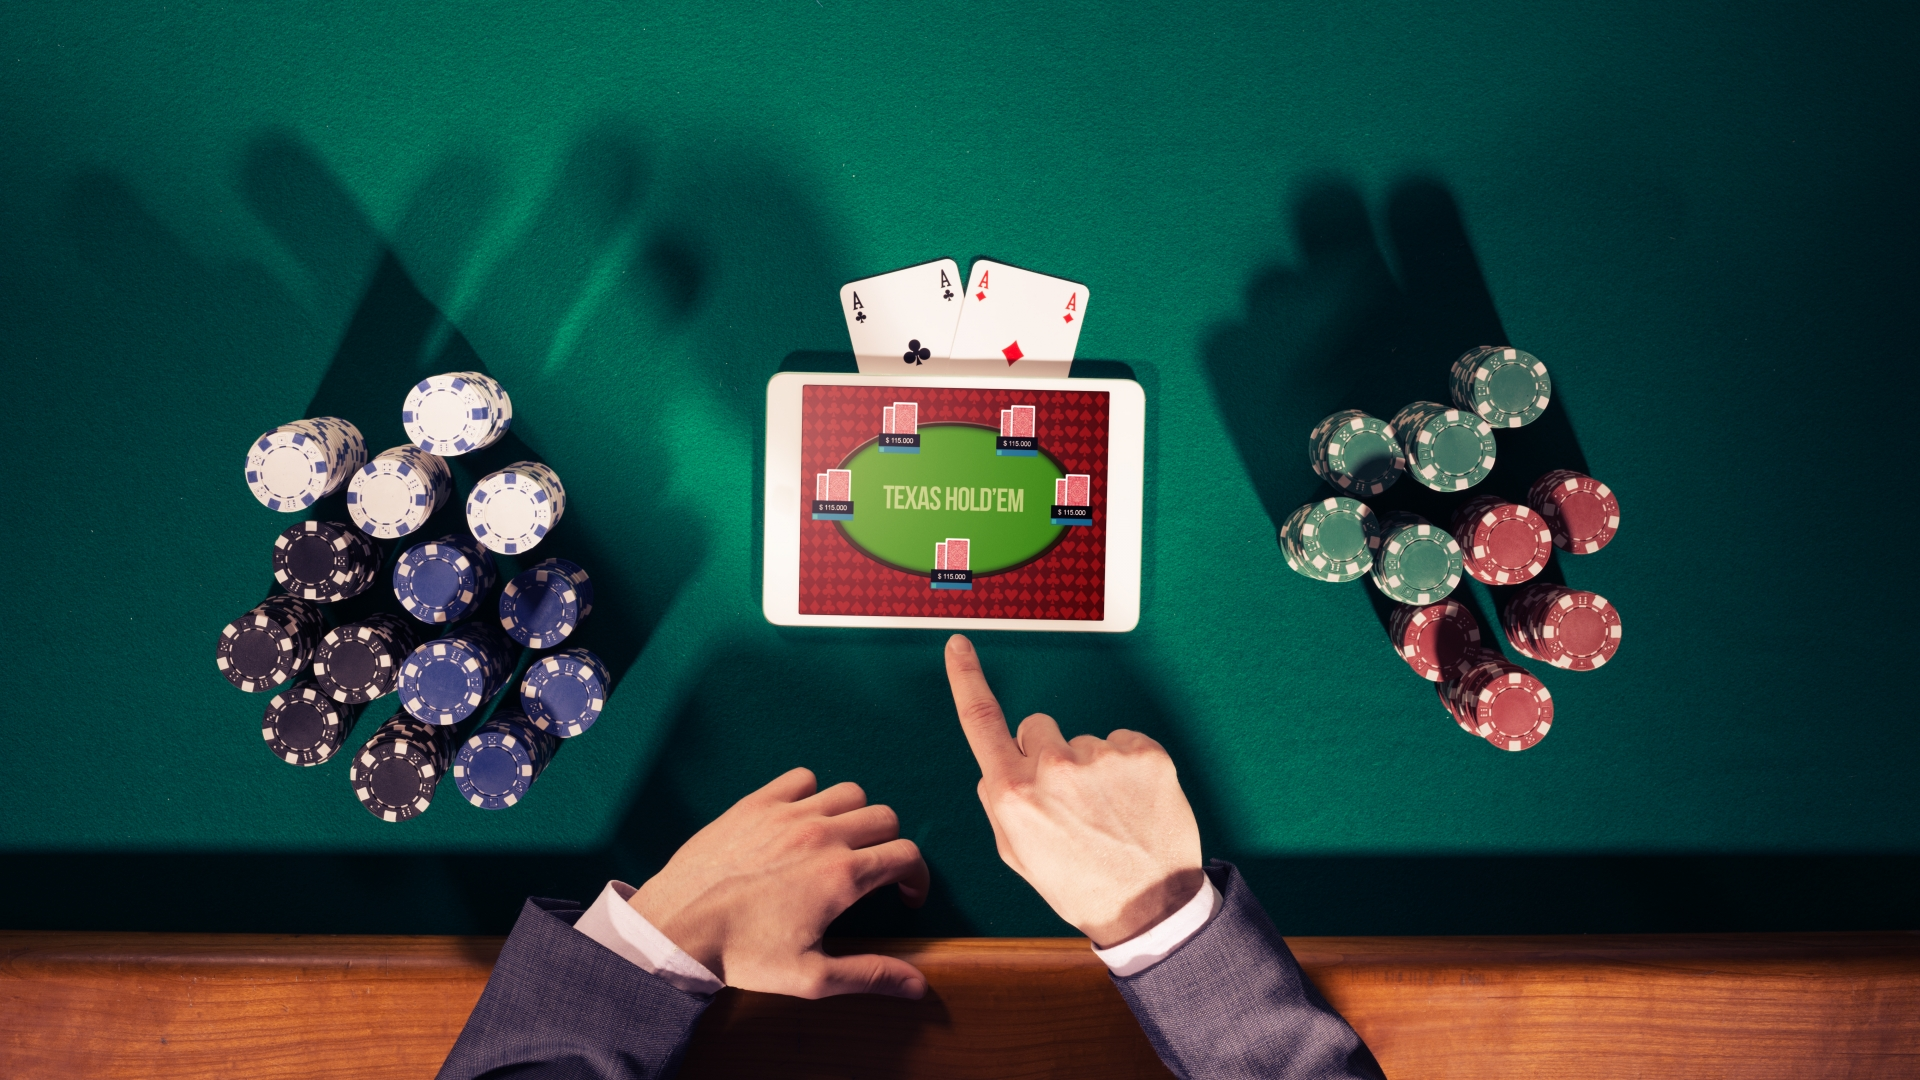 Where to play free poker online